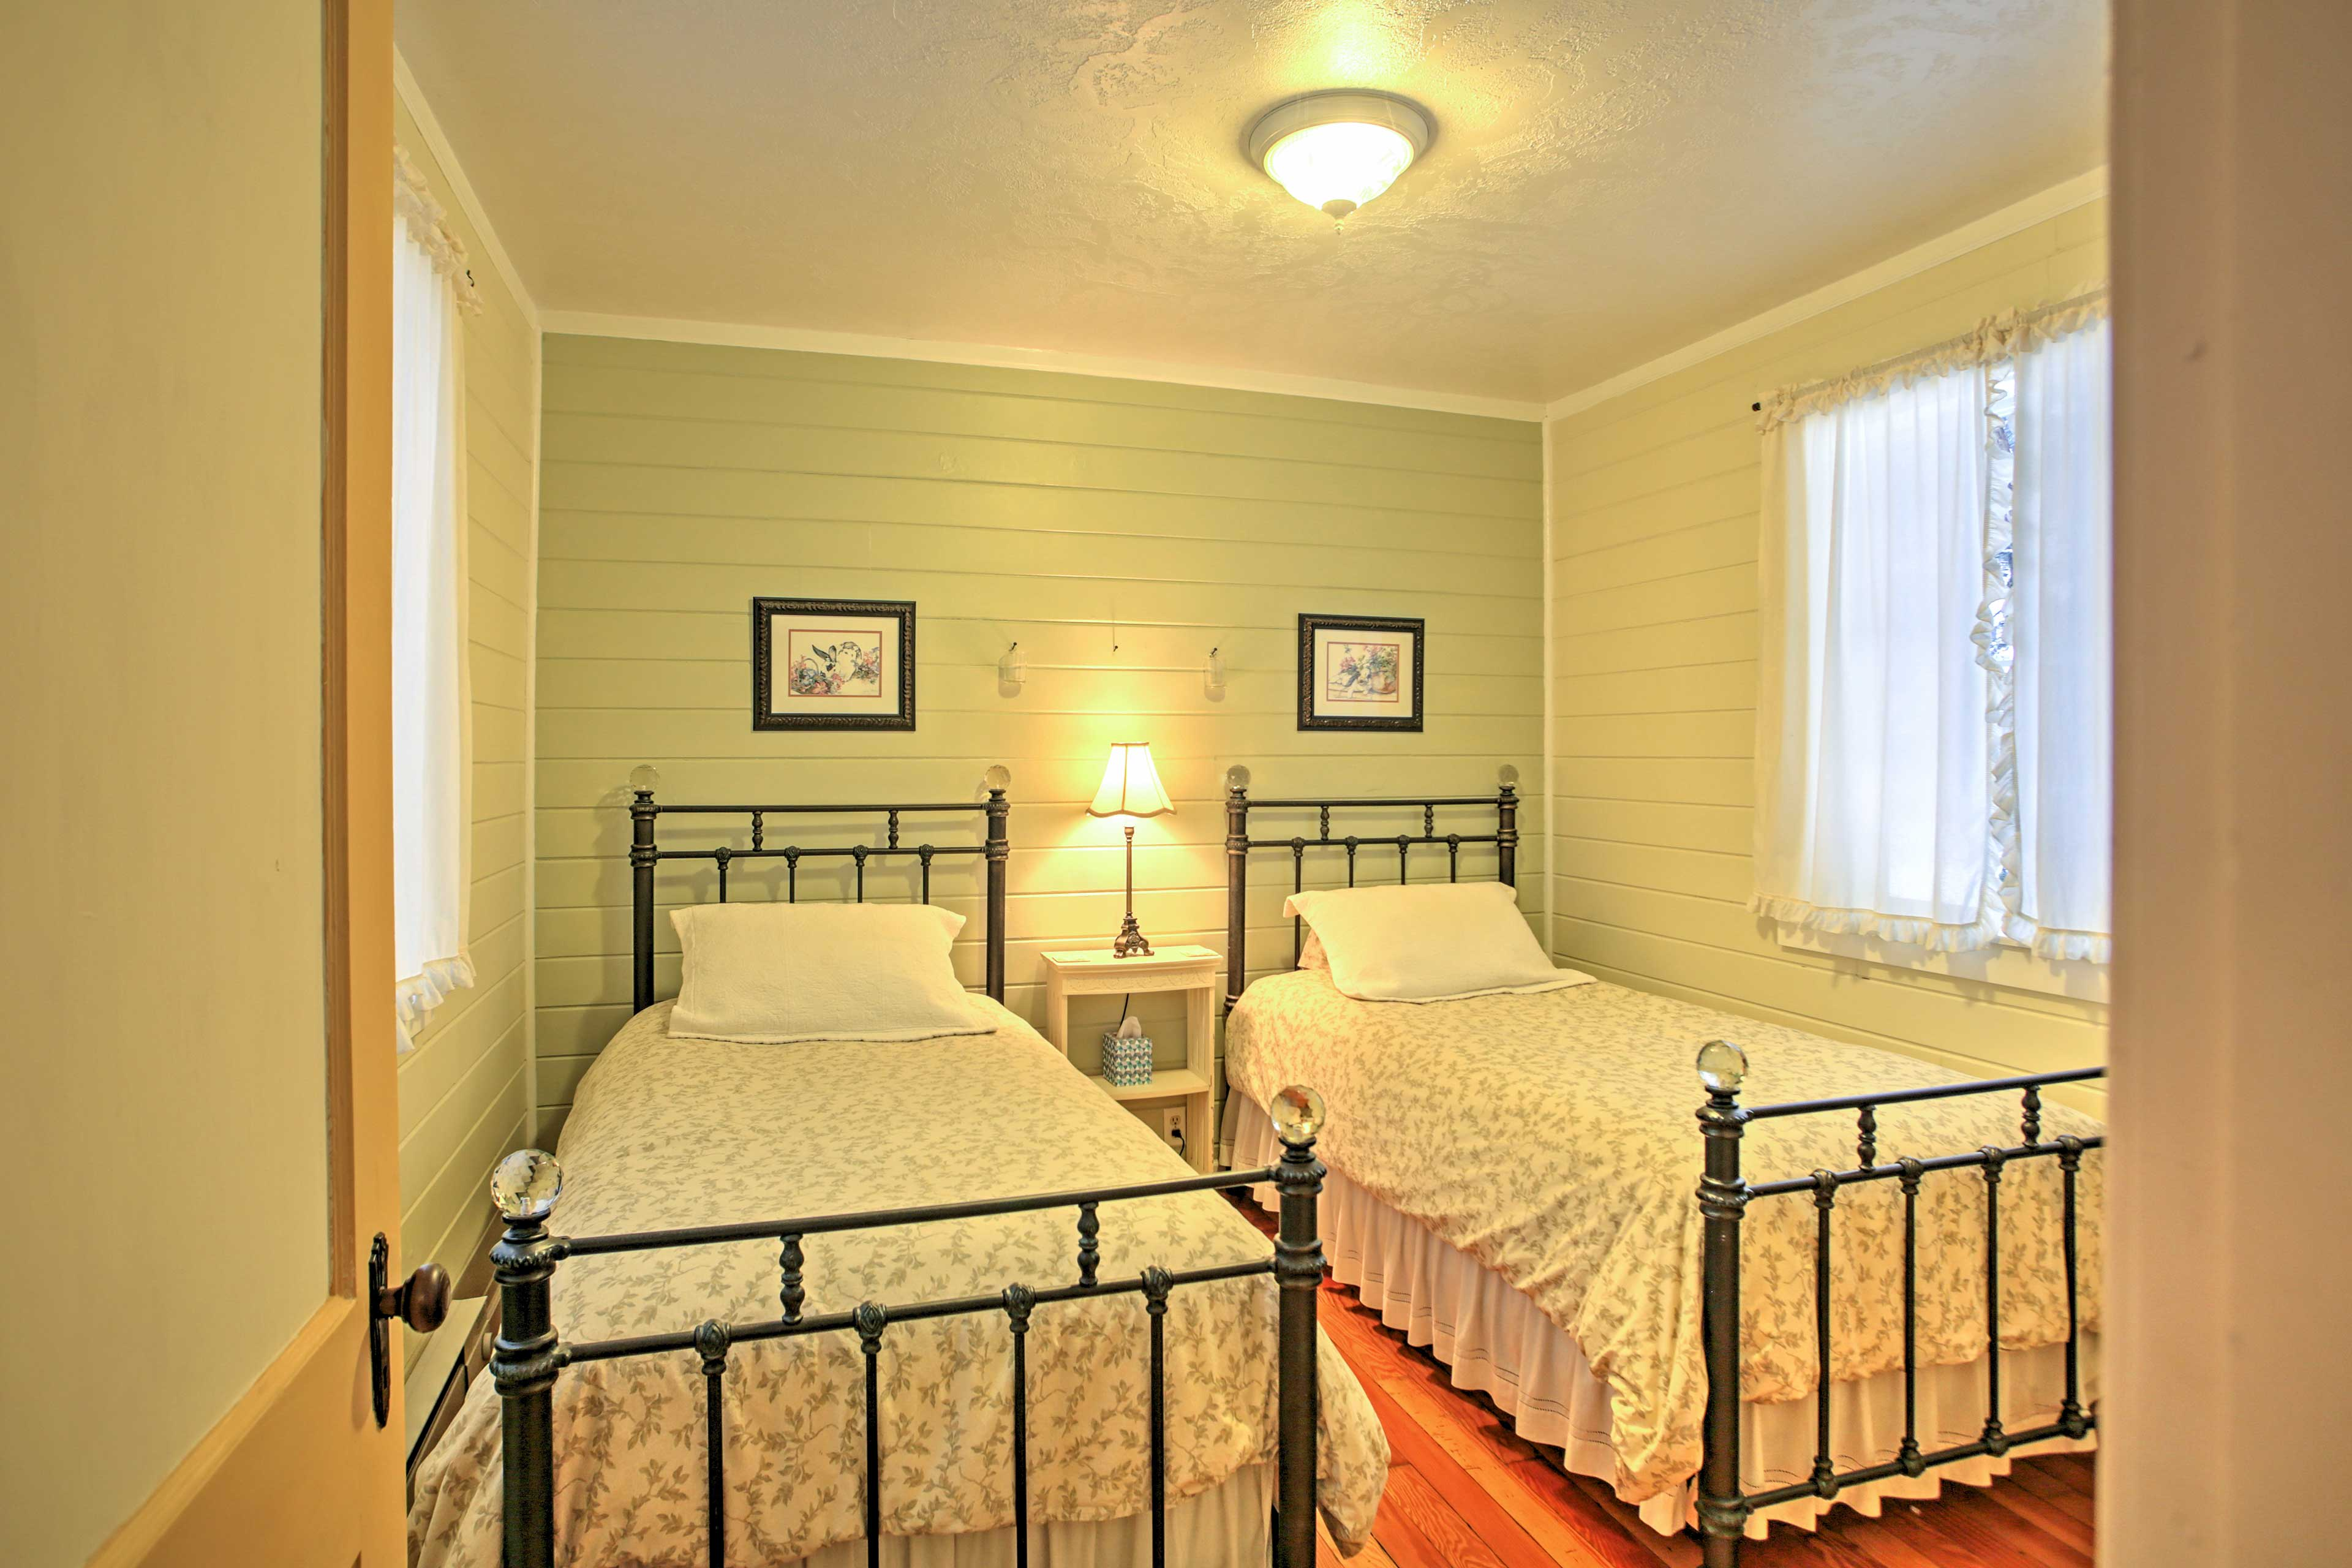 Bedroom 4 offers 2 plush twin-sized beds.